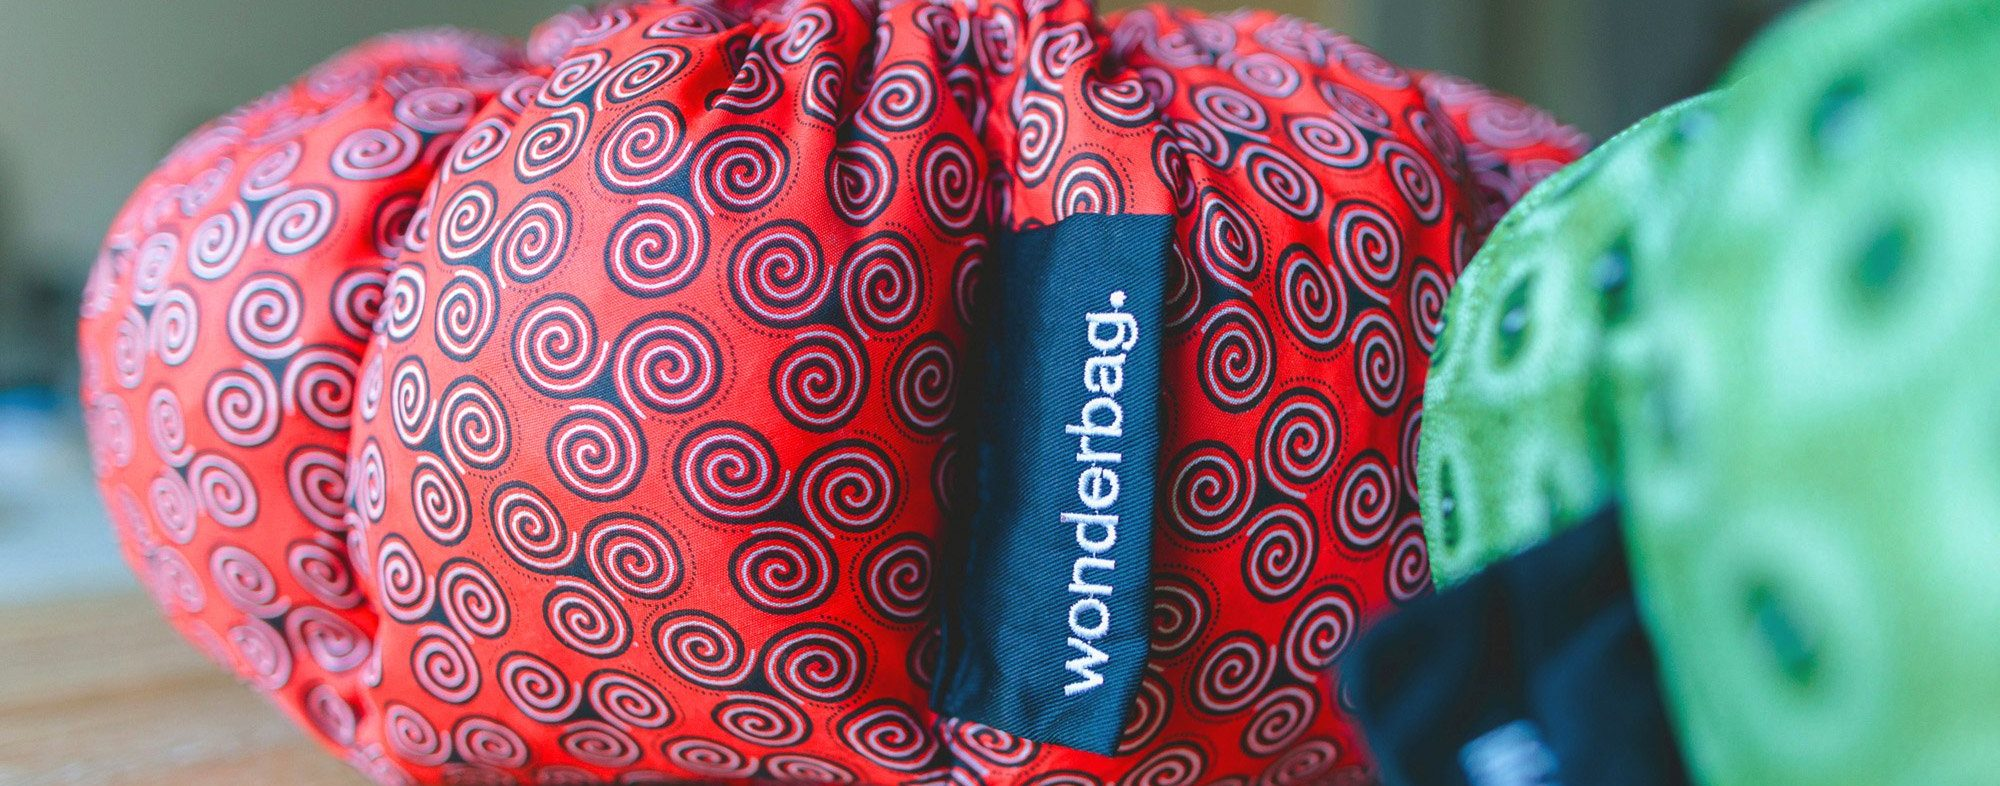 Wonderbag Online Shop